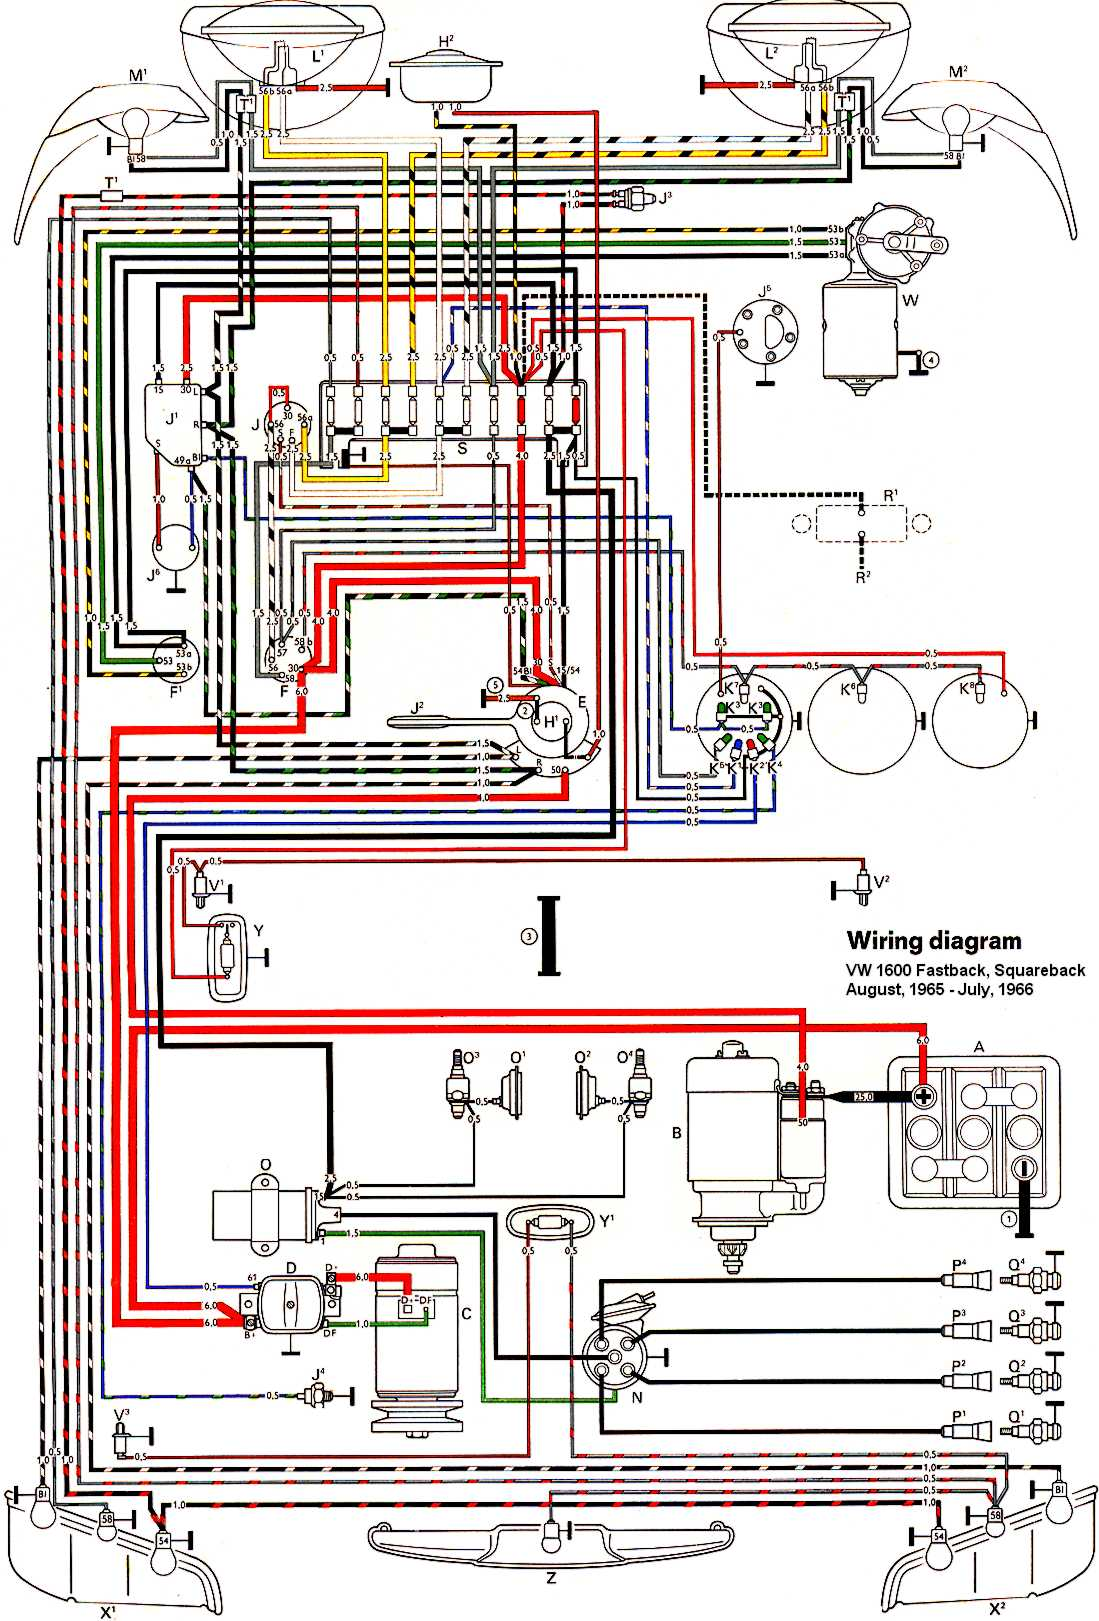 68 volkswagen beetle wiring diagram 2007 volkswagen beetle wiring diagram thesamba.com :: type 3 wiring diagrams